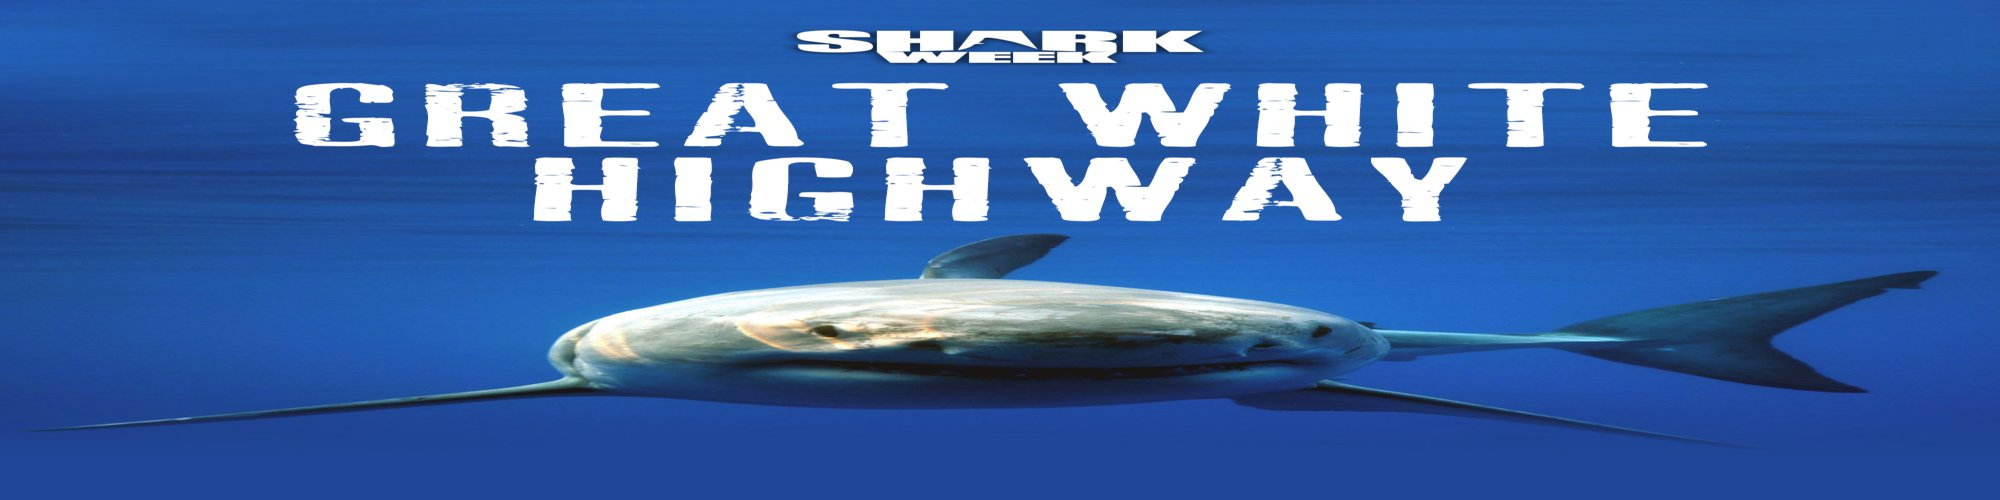 Great White Highway